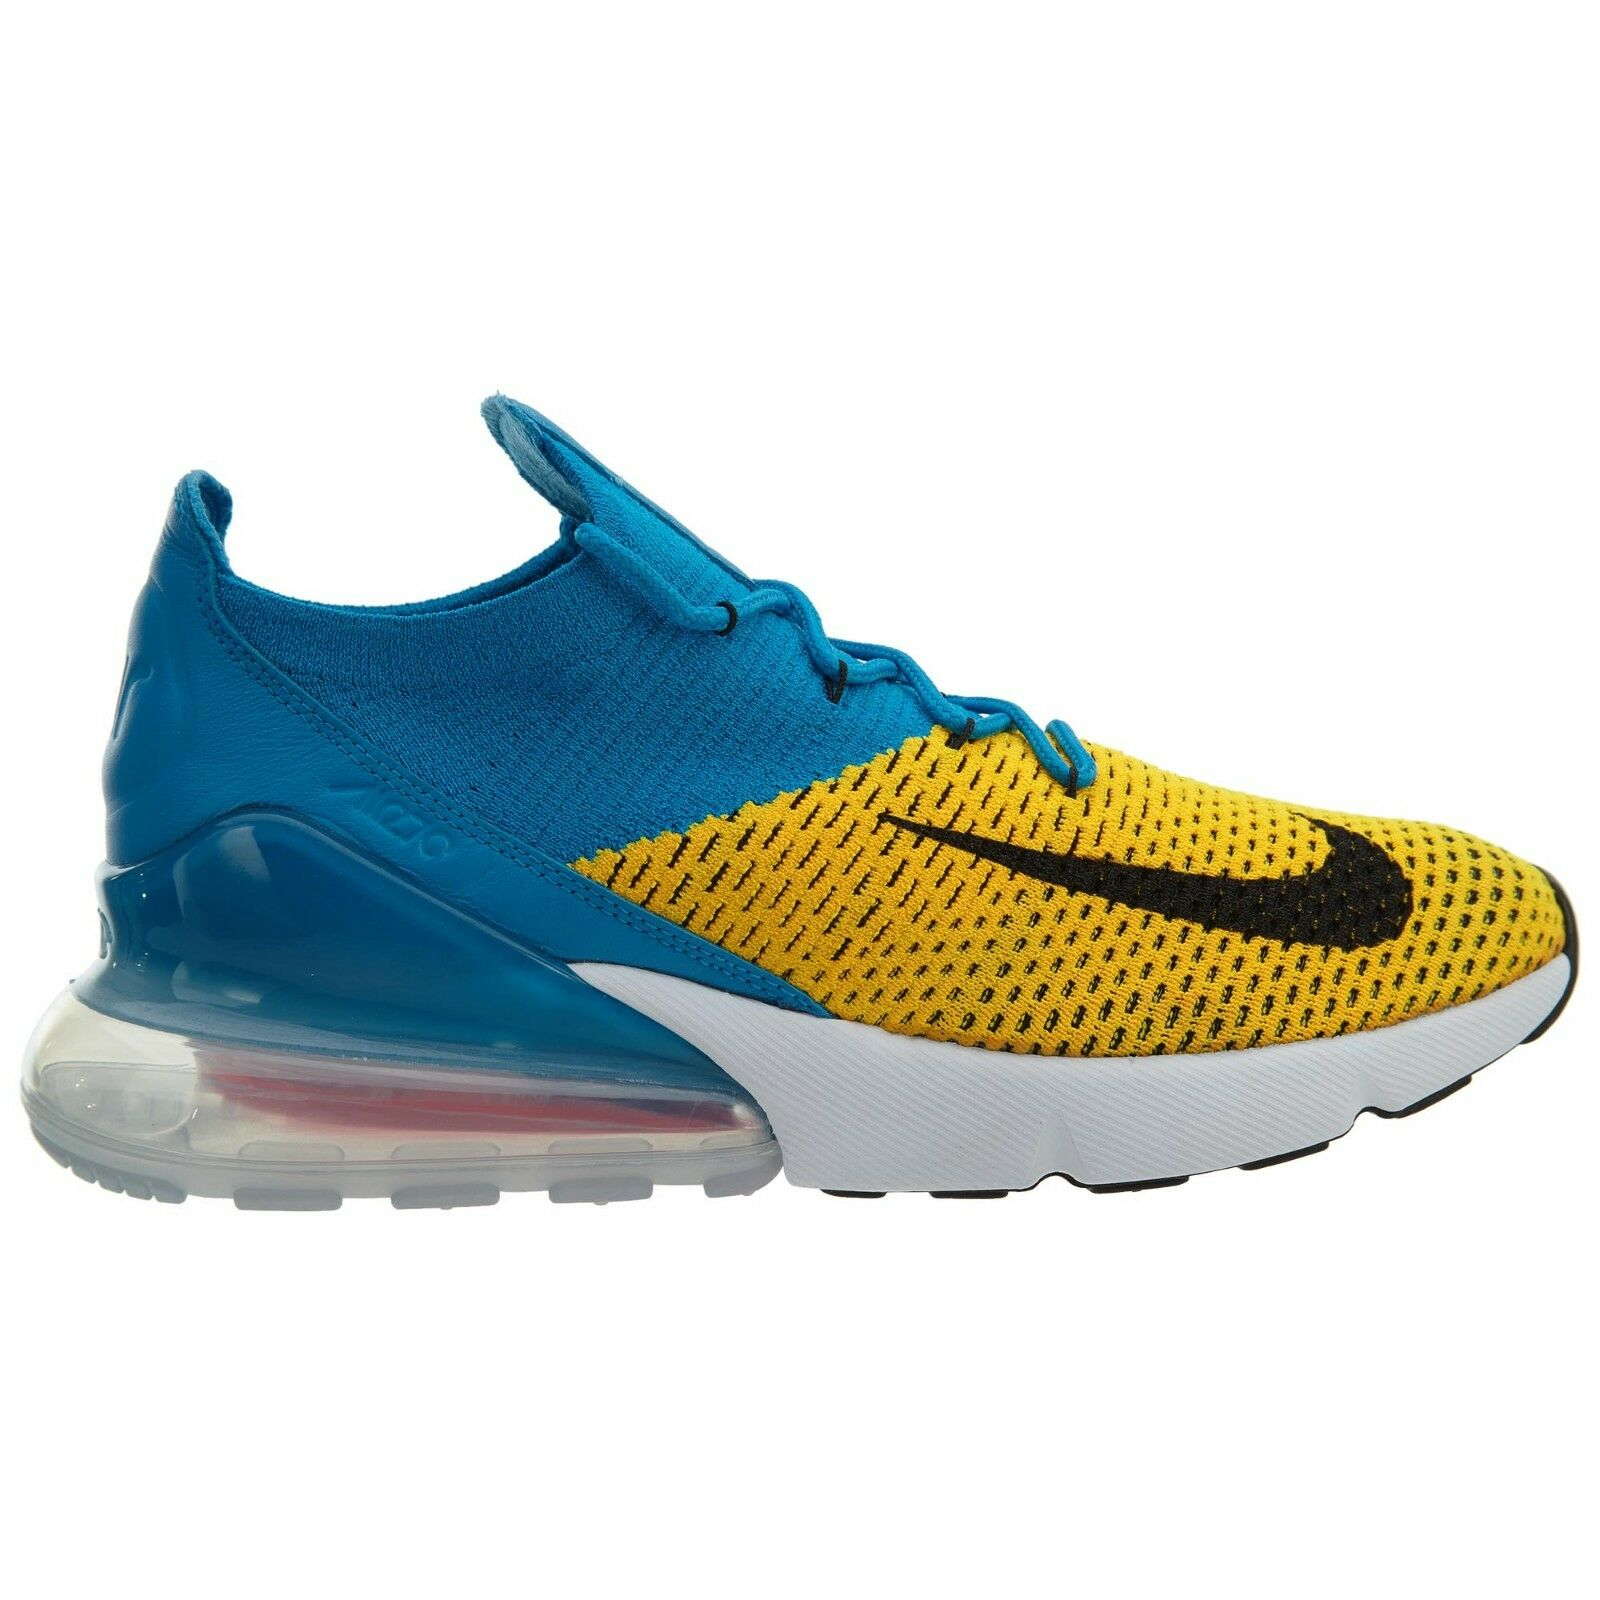 Nike Air Max 270 Flyknit Mens AO1023-800 Laser orange bluee Orbit shoes Size 8.5